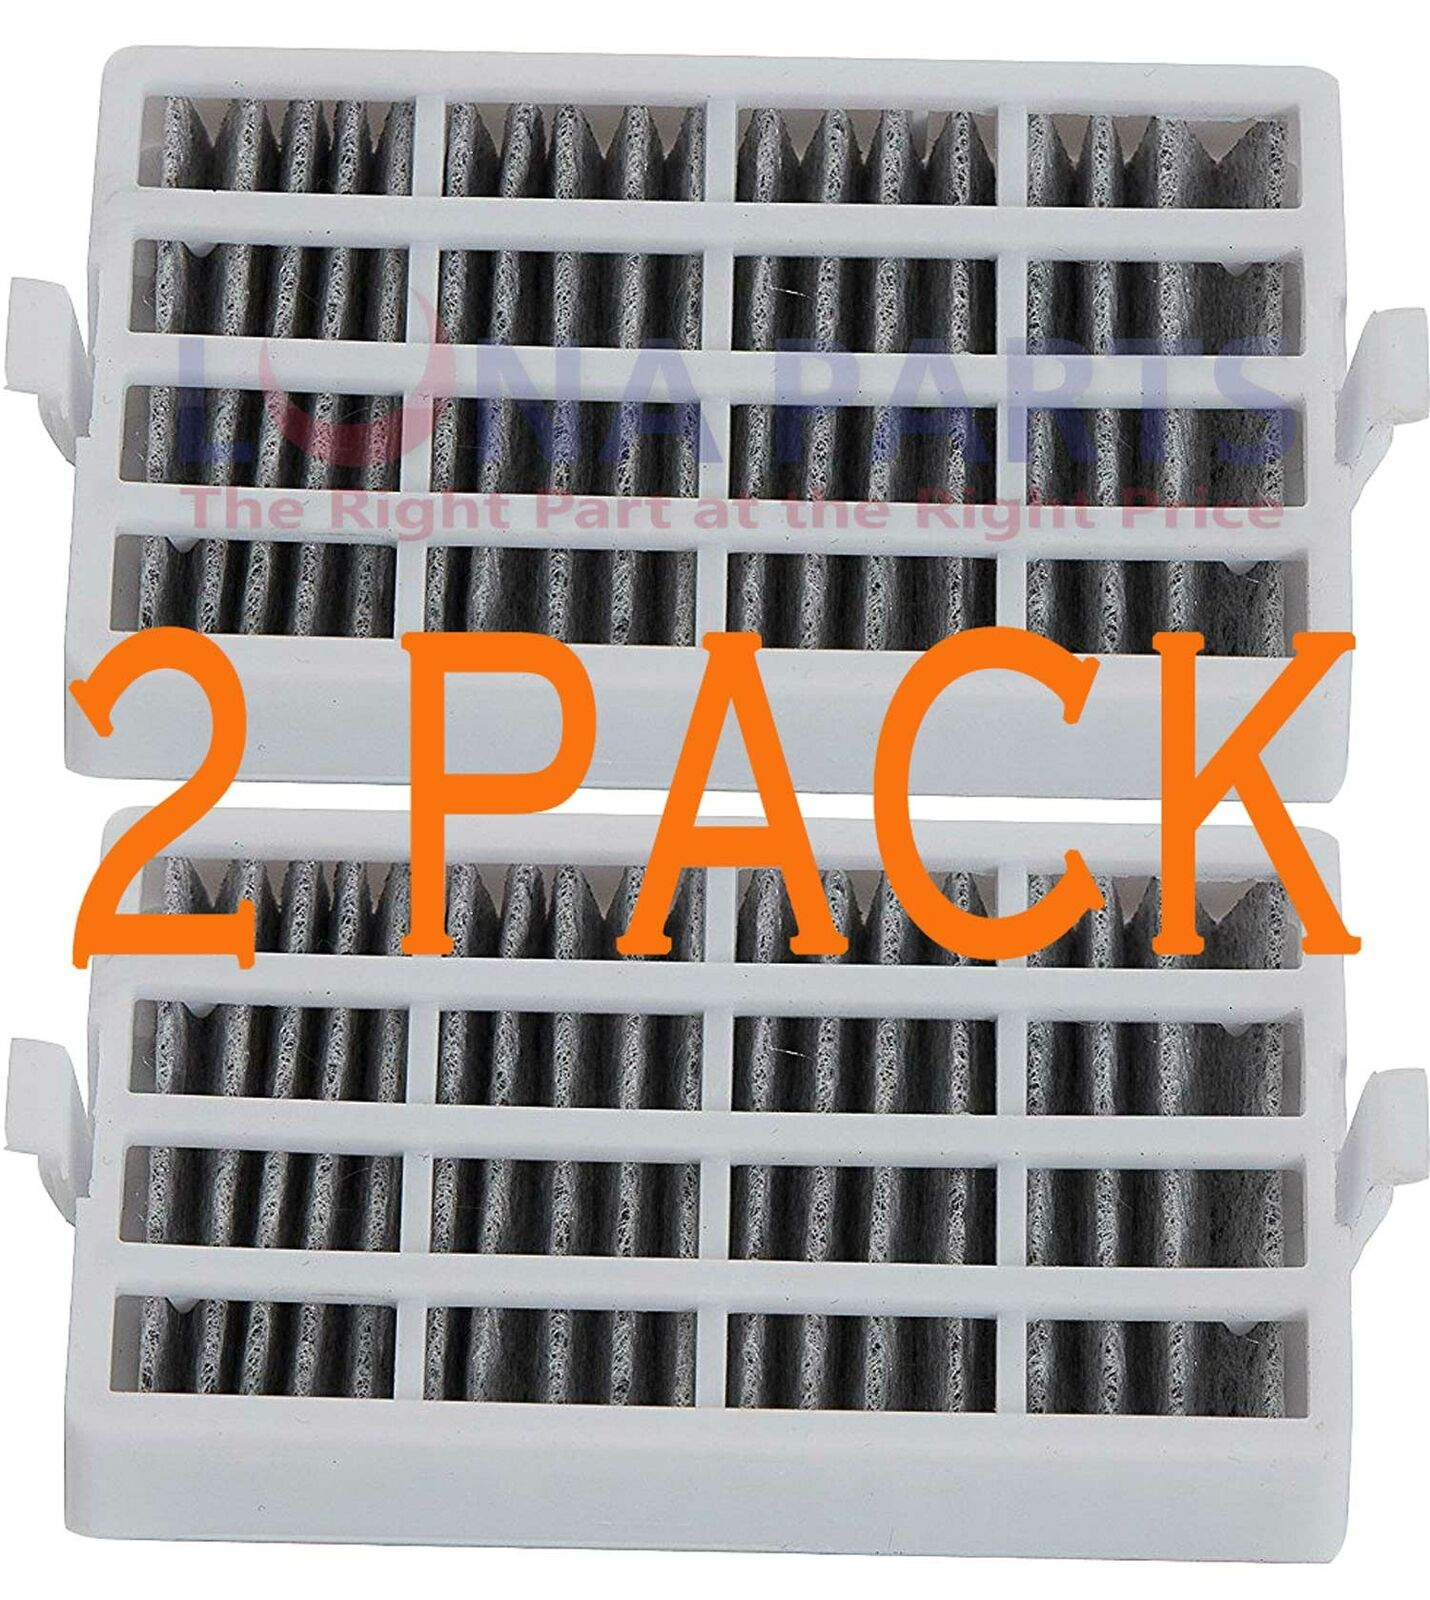 6 Pack Air Filter for Whirlpool WSF26C3EXF01 WSF26C2EXY02 WRF736SDAM12